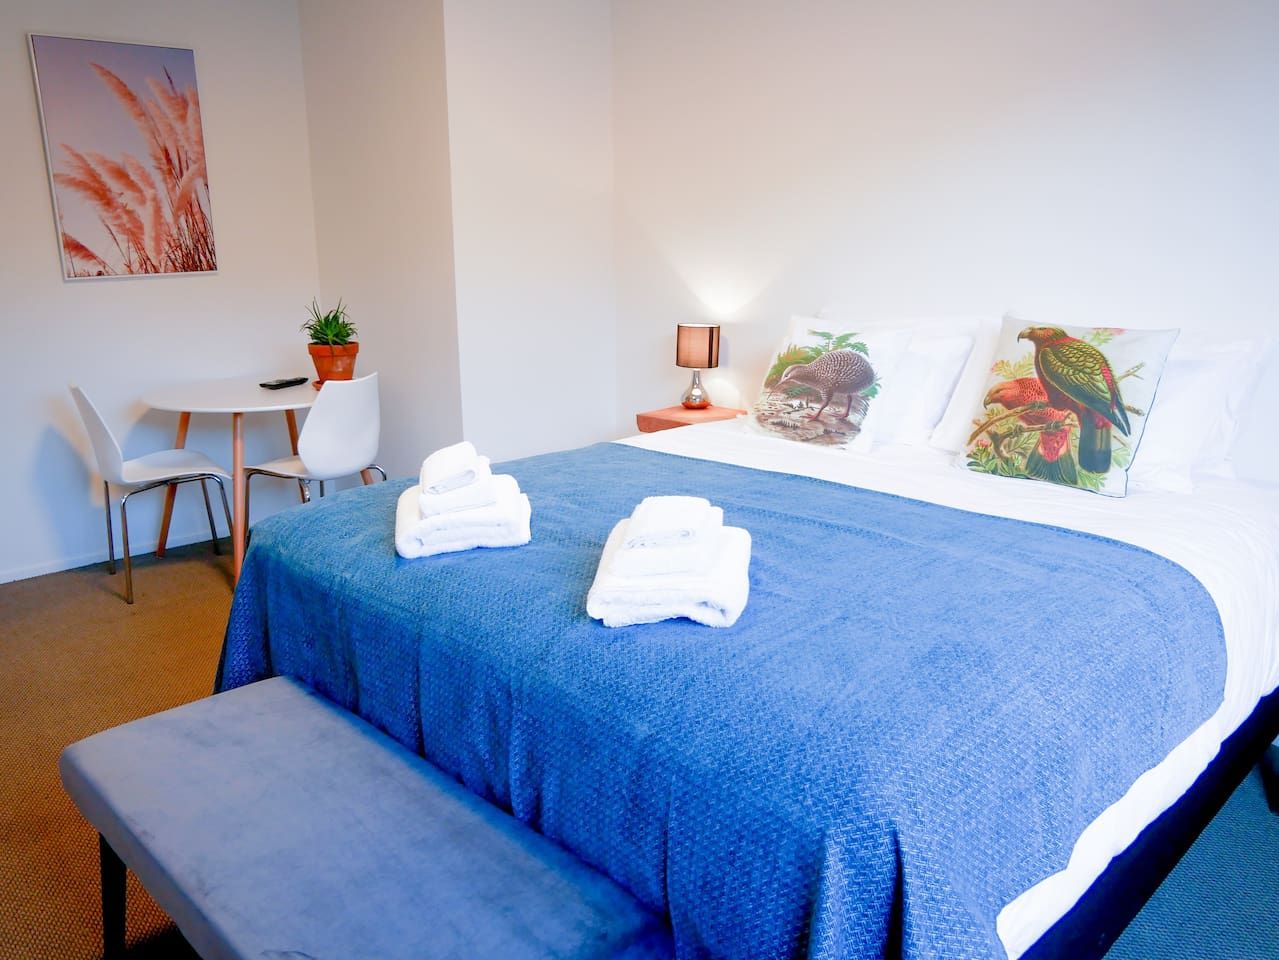 King room with king size bed, ensuite & sitting area, Complimentary continental breakfast included